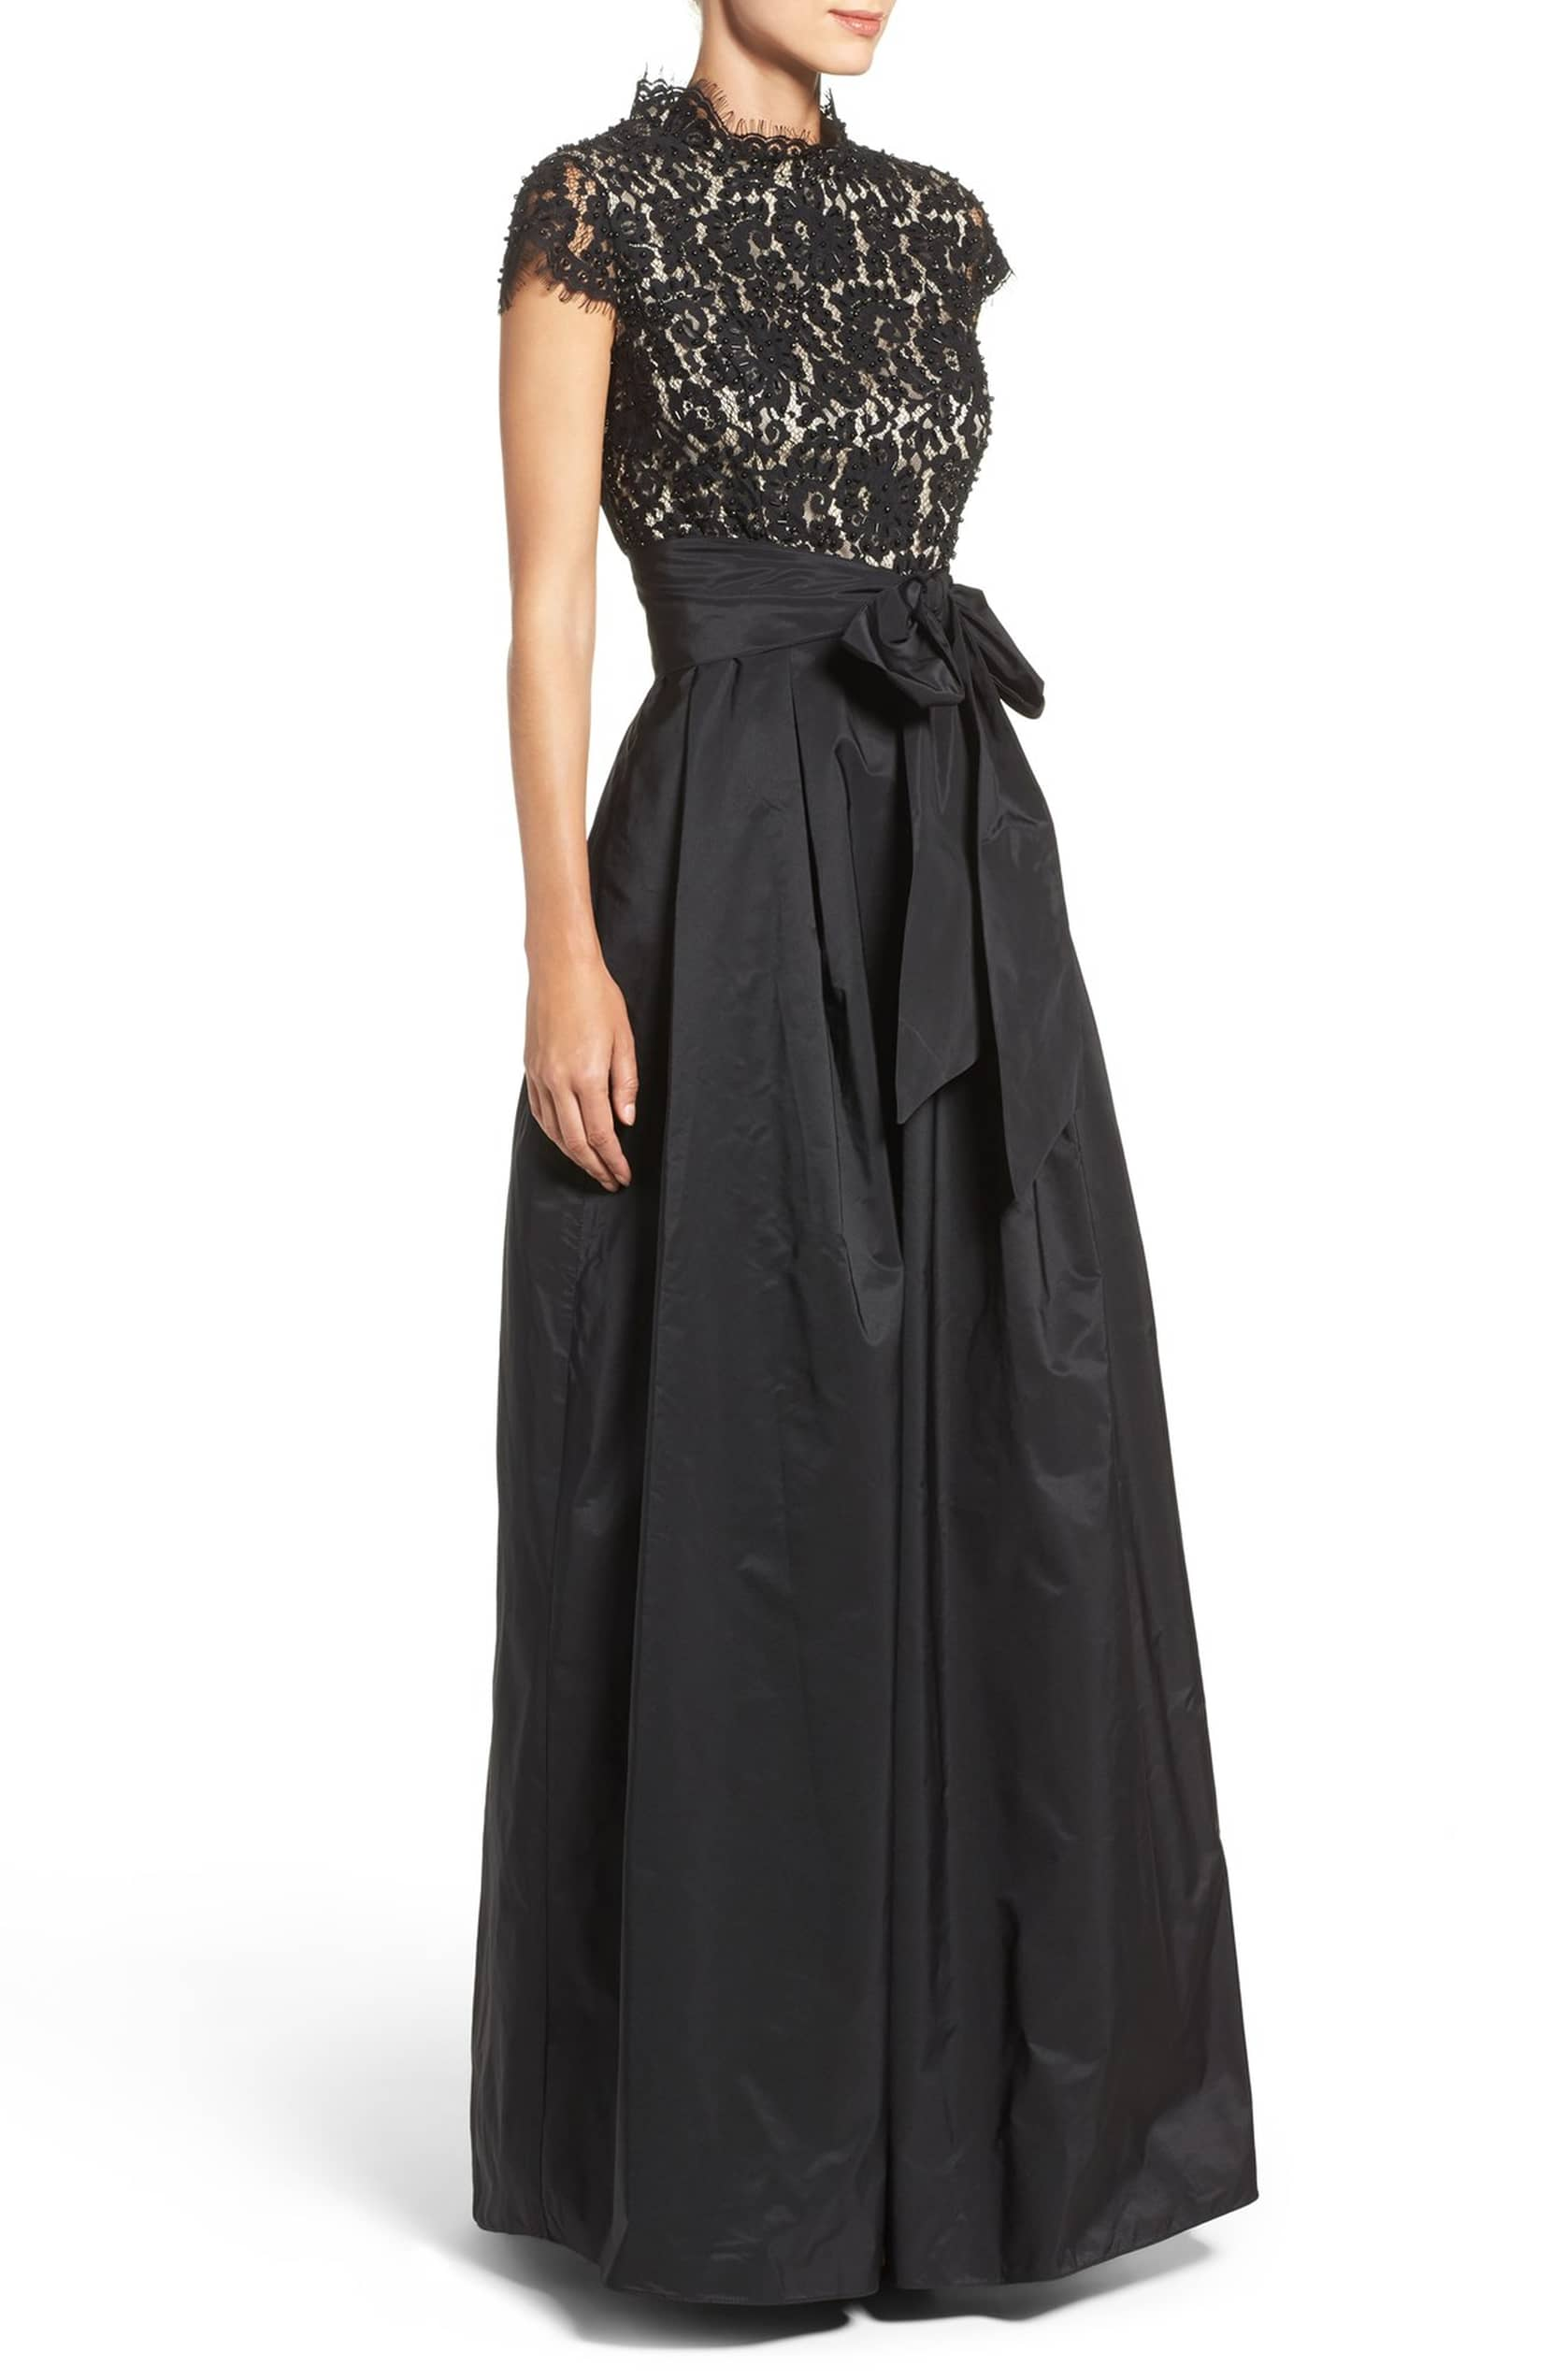 22903588fd5 ELIZA J Beaded Bodice Black Ballgown - We Select Dresses